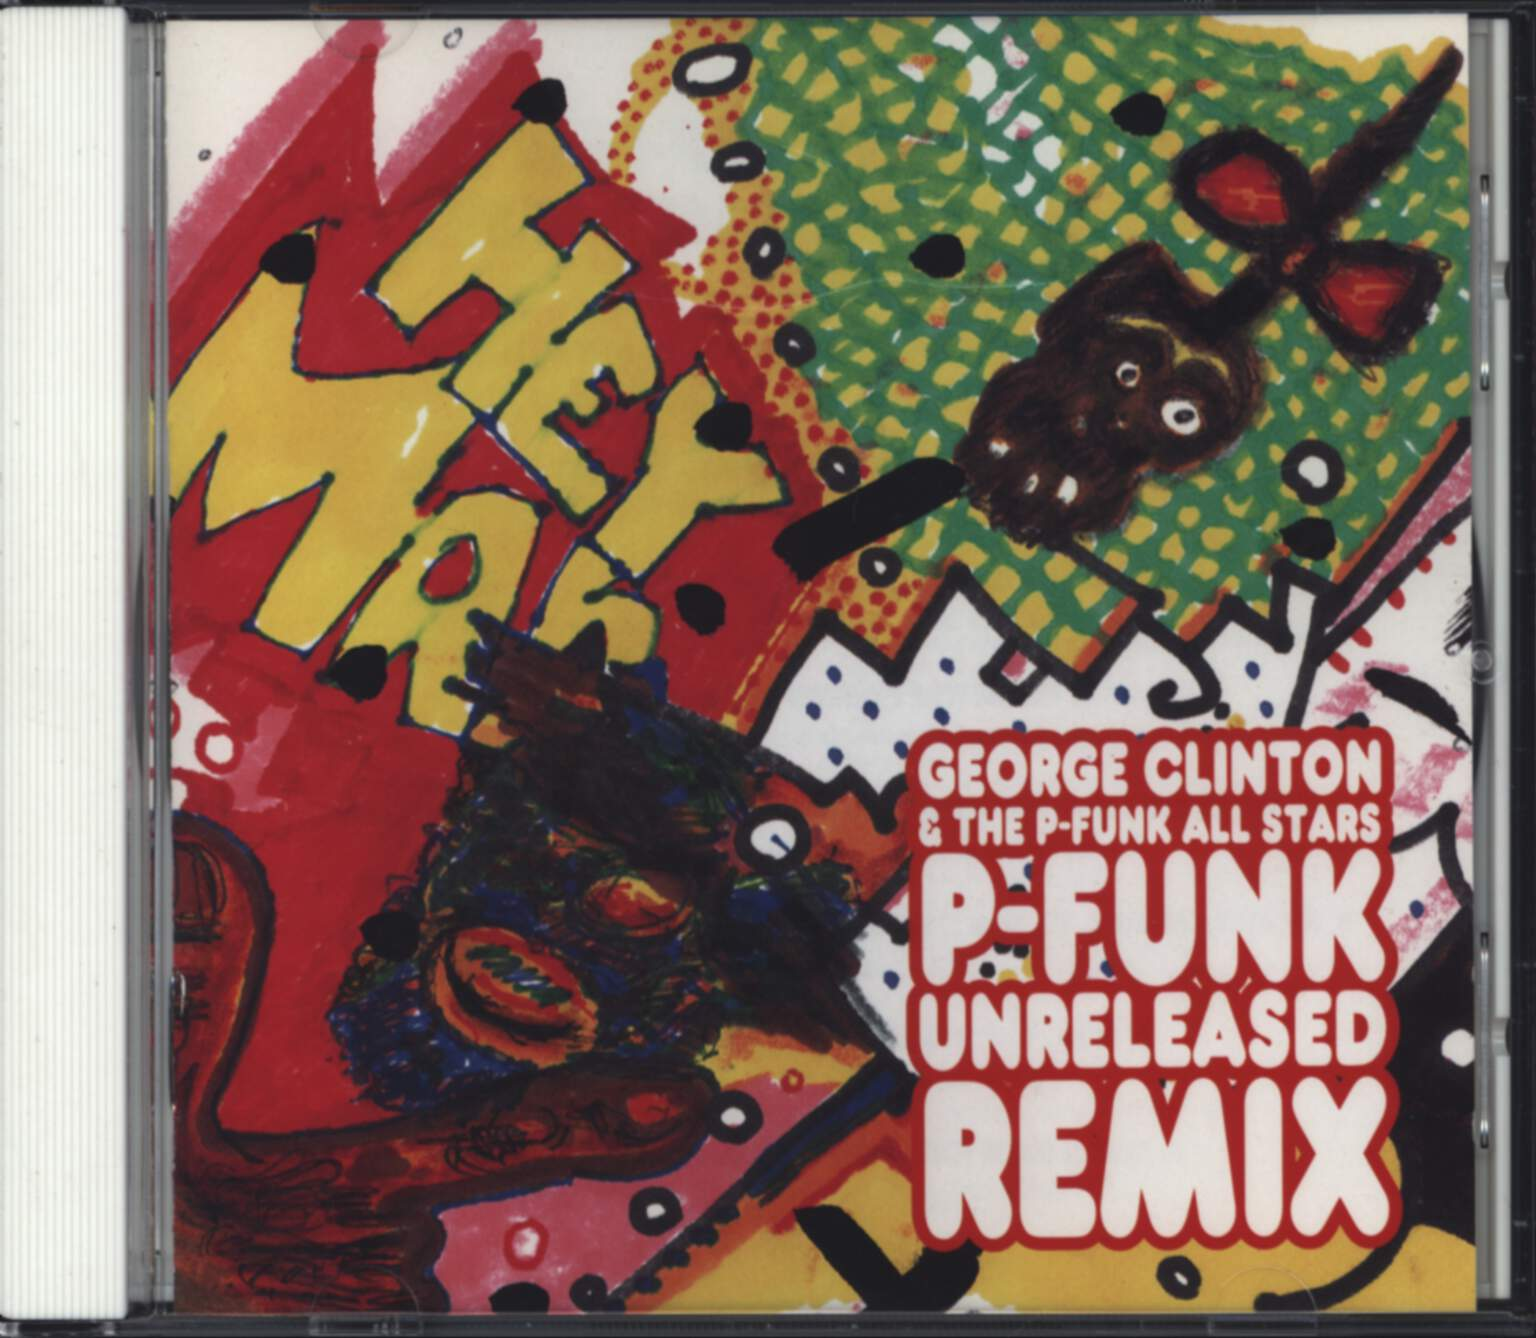 George Clinton: P-Funk Unreleased Remix, CD